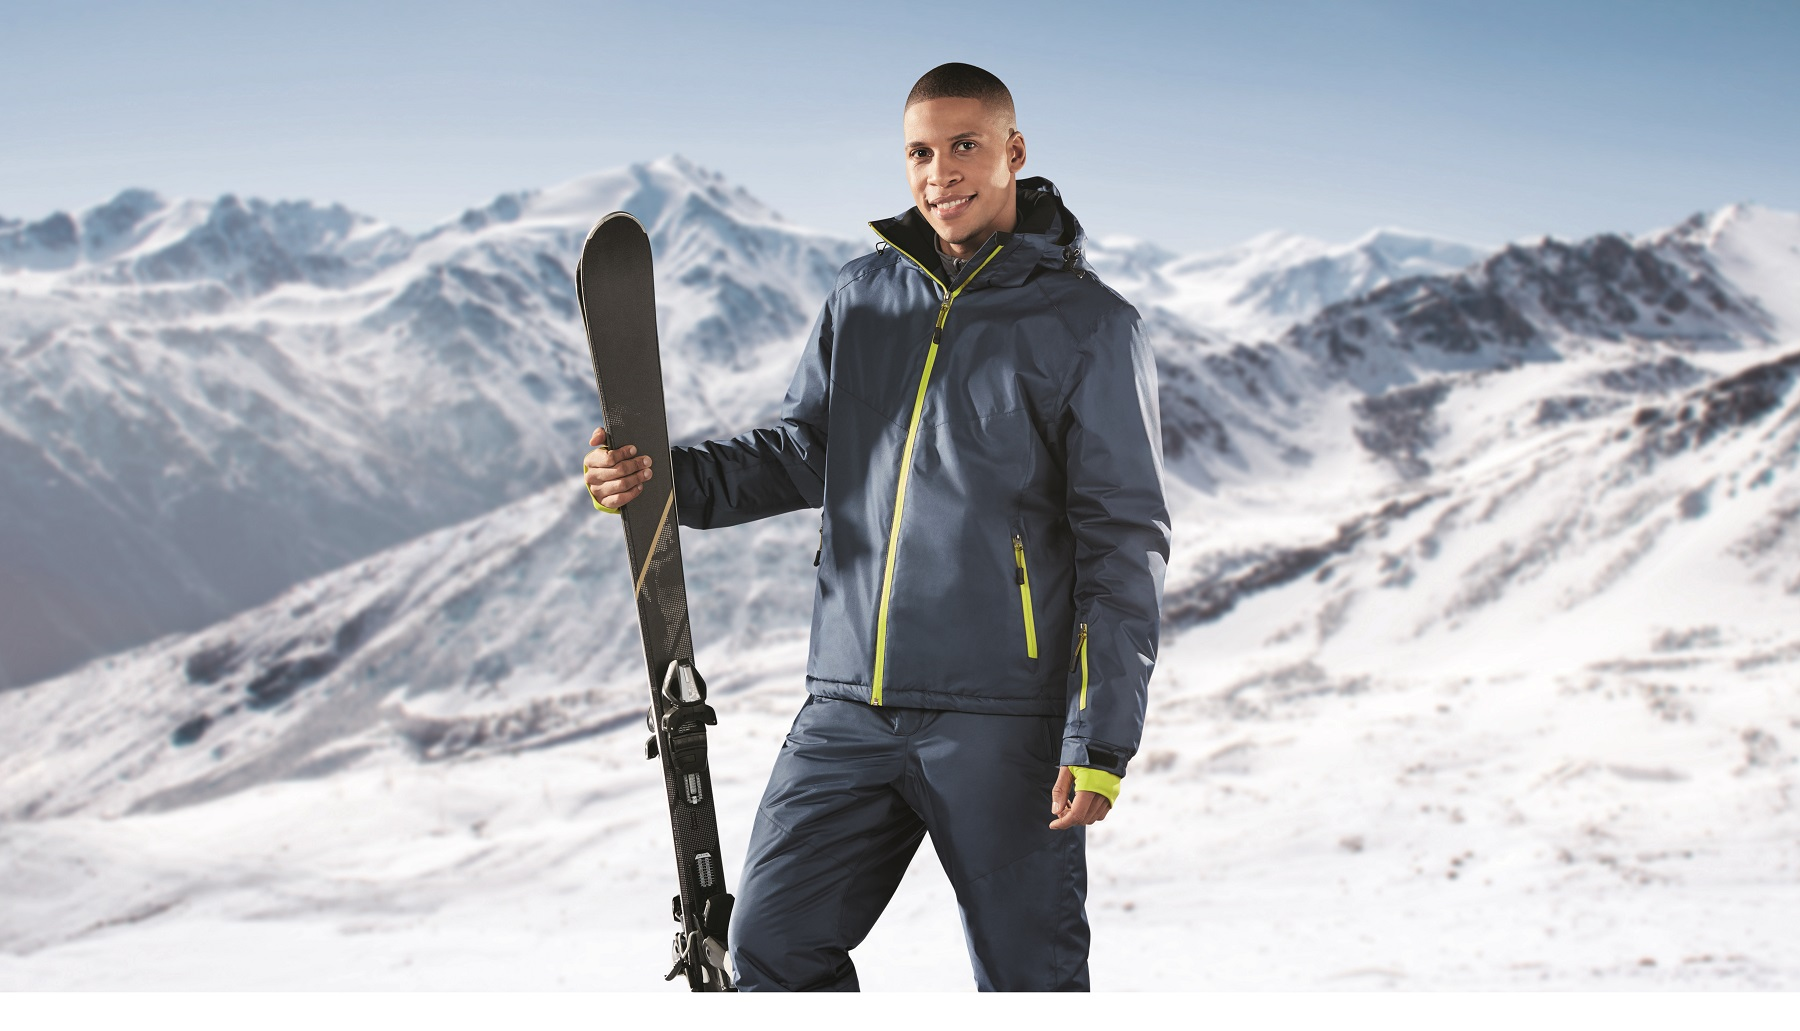 48a632e29e Snow Joke – Head to Toe Ski Gear for Under £60 at Lidl Northern ...